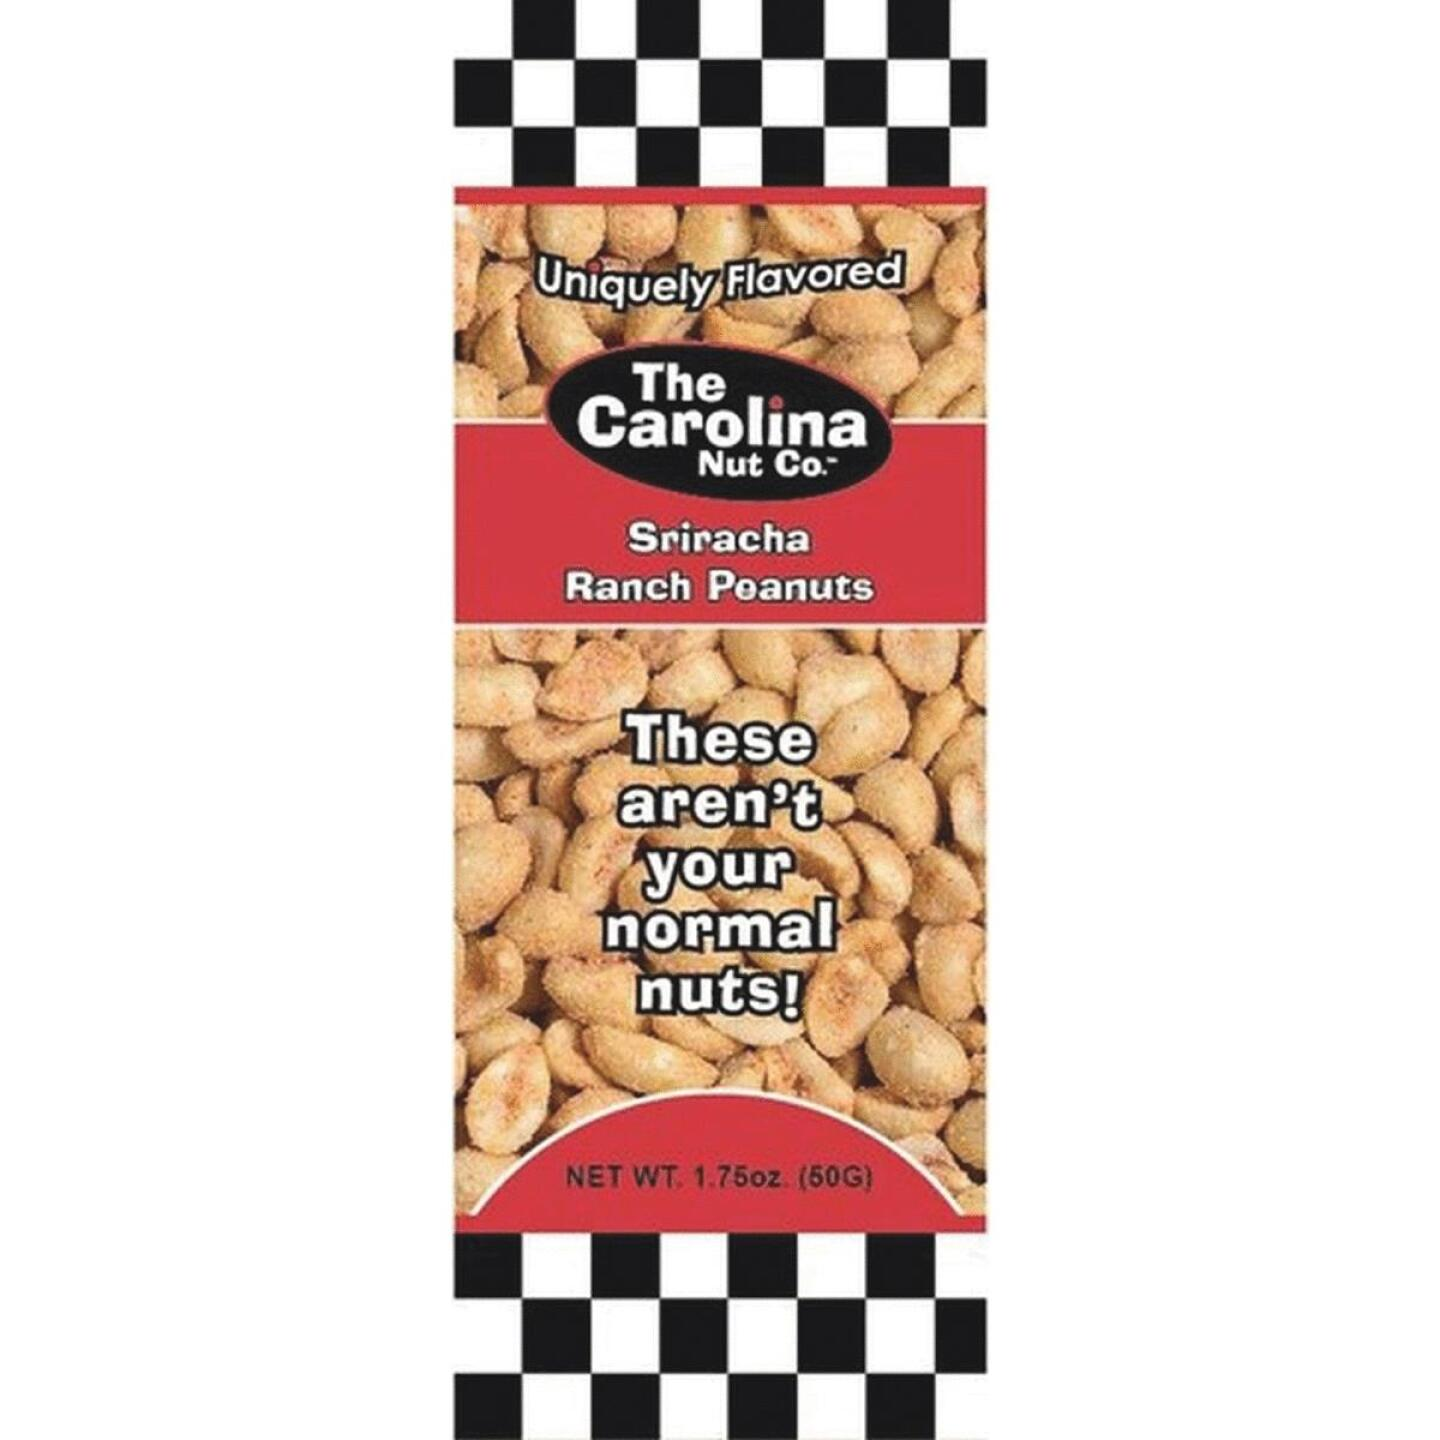 The Carolina Nut Company 1.75 Oz. Sriracha Ranch Peanuts Image 1